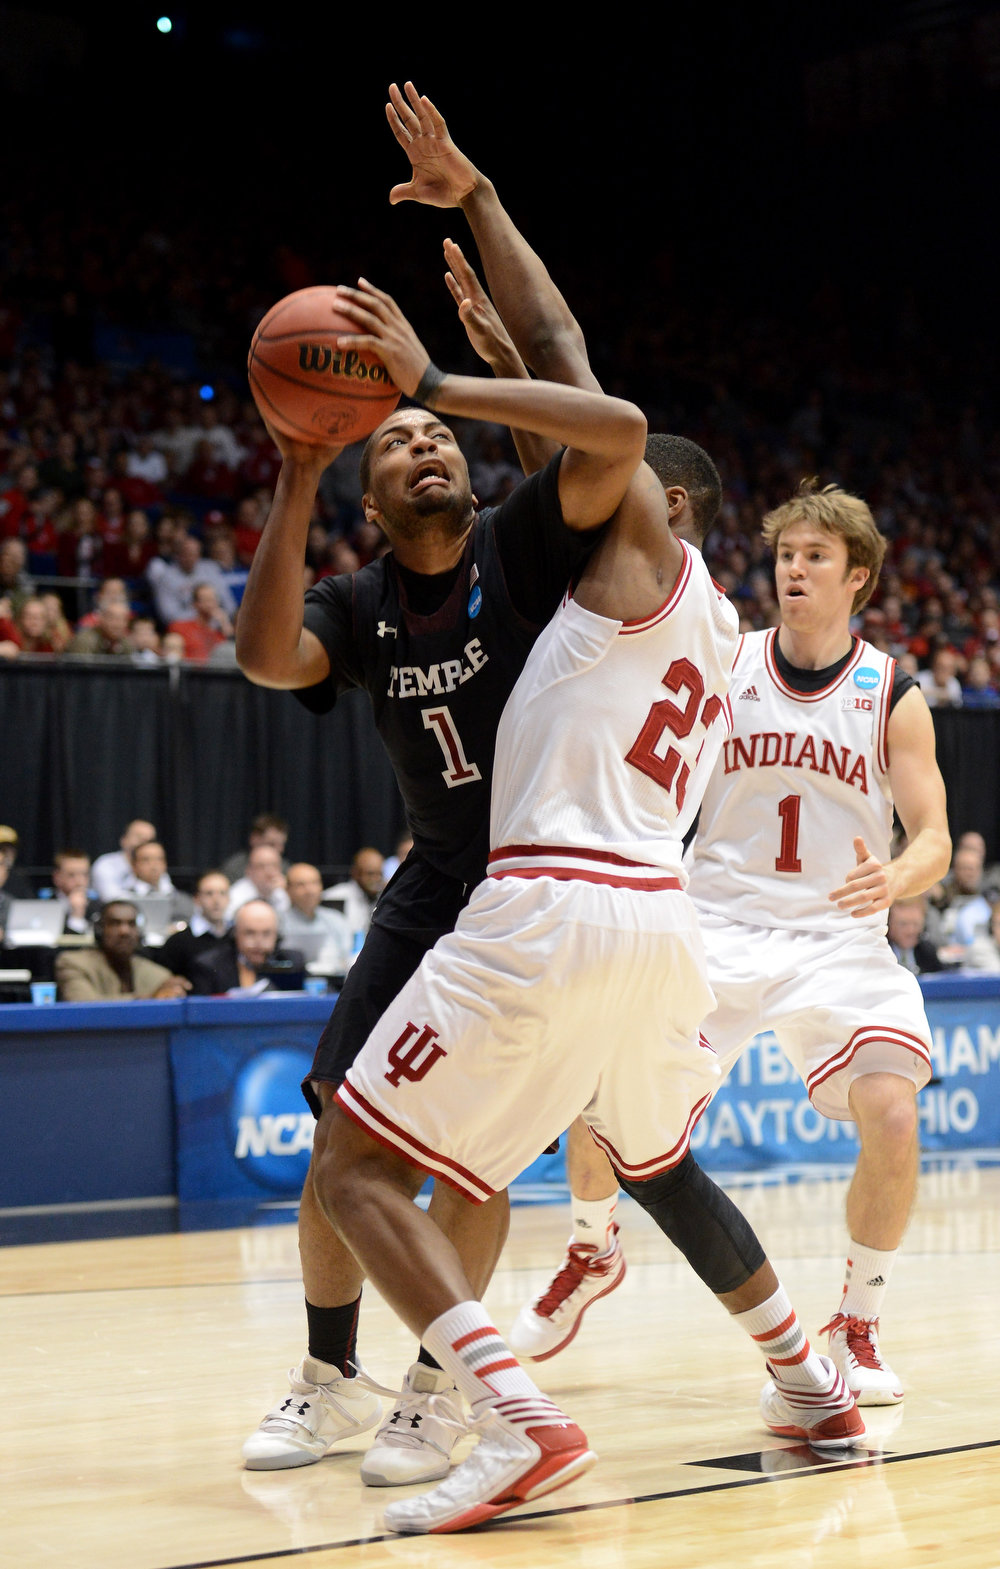 . Khalif Wyatt #1 of the Temple Owls handles the ball against Remy Abell #23 of the Indiana Hoosiers in the second half during the third round of the 2013 NCAA Men\'s Basketball Tournament at UD Arena on March 24, 2013 in Dayton, Ohio.  (Photo by Jason Miller/Getty Images)